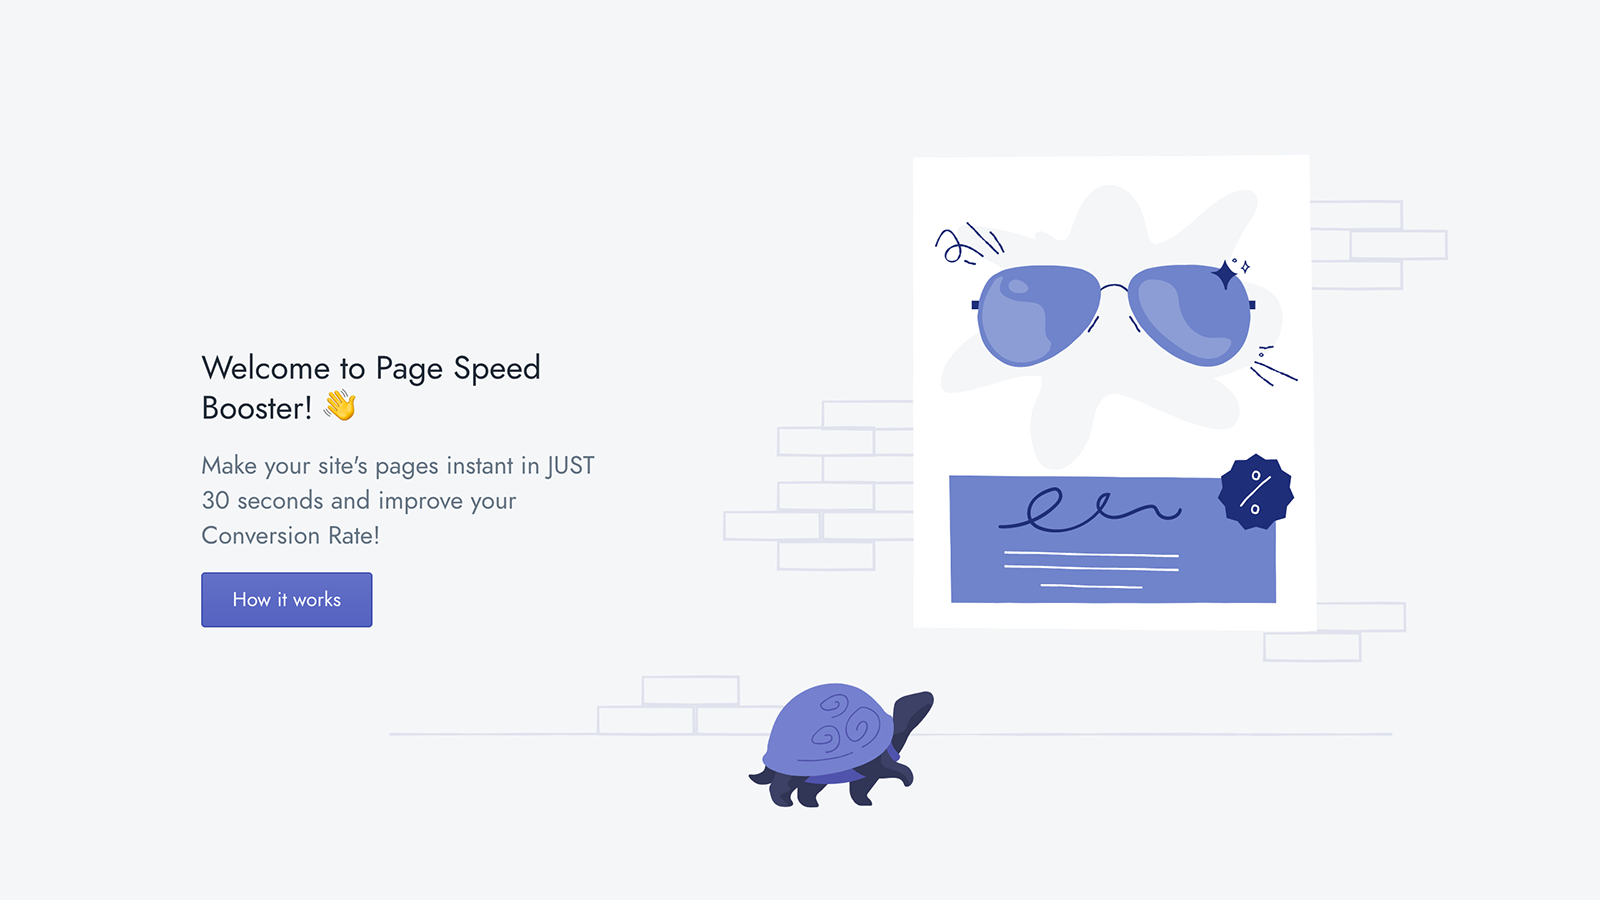 Page Speed Booster